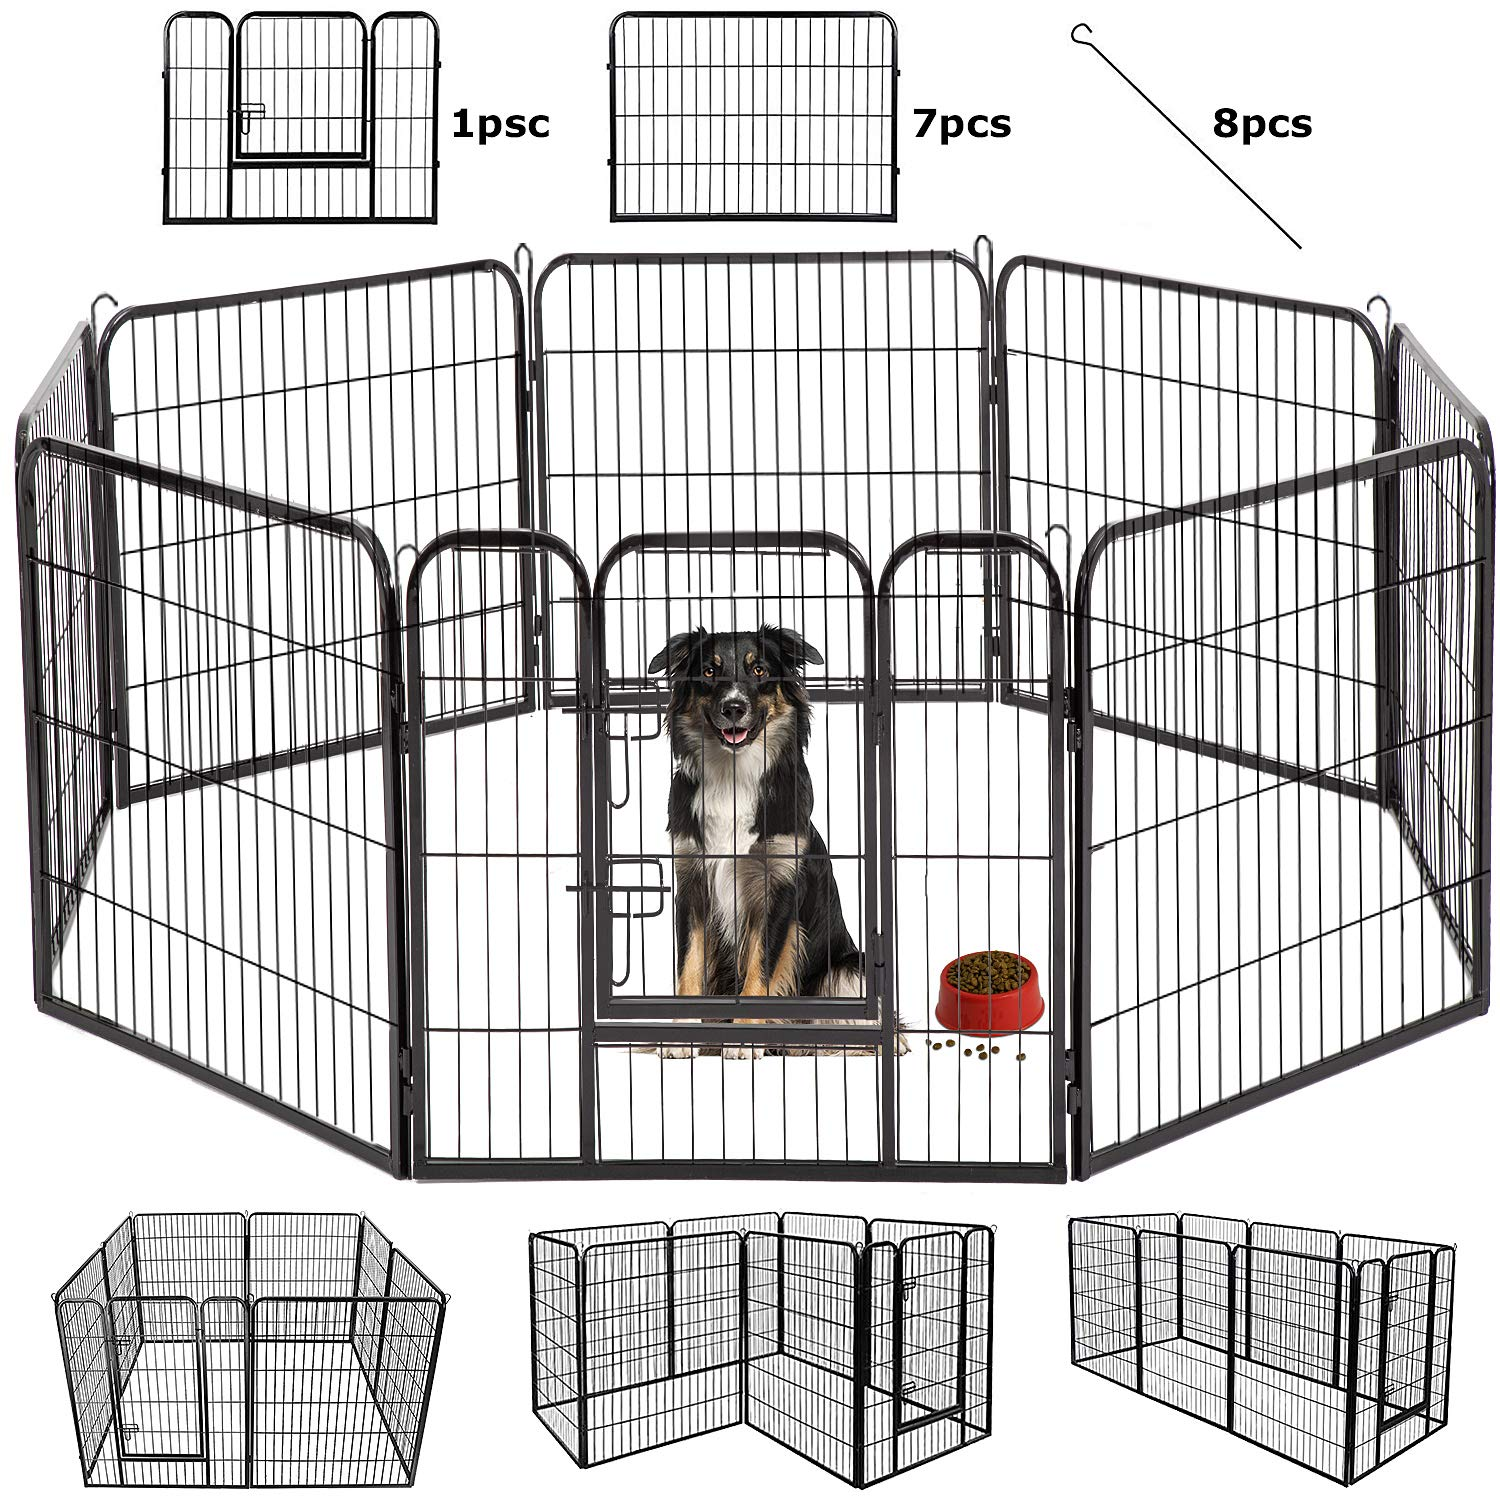 BestPet Outdoor/indoor 40 Inches Metal Dog Pen Dog Fence Playpen Extra Large Exercise Pen Dog Crate Cage Kennel Black by BestPet